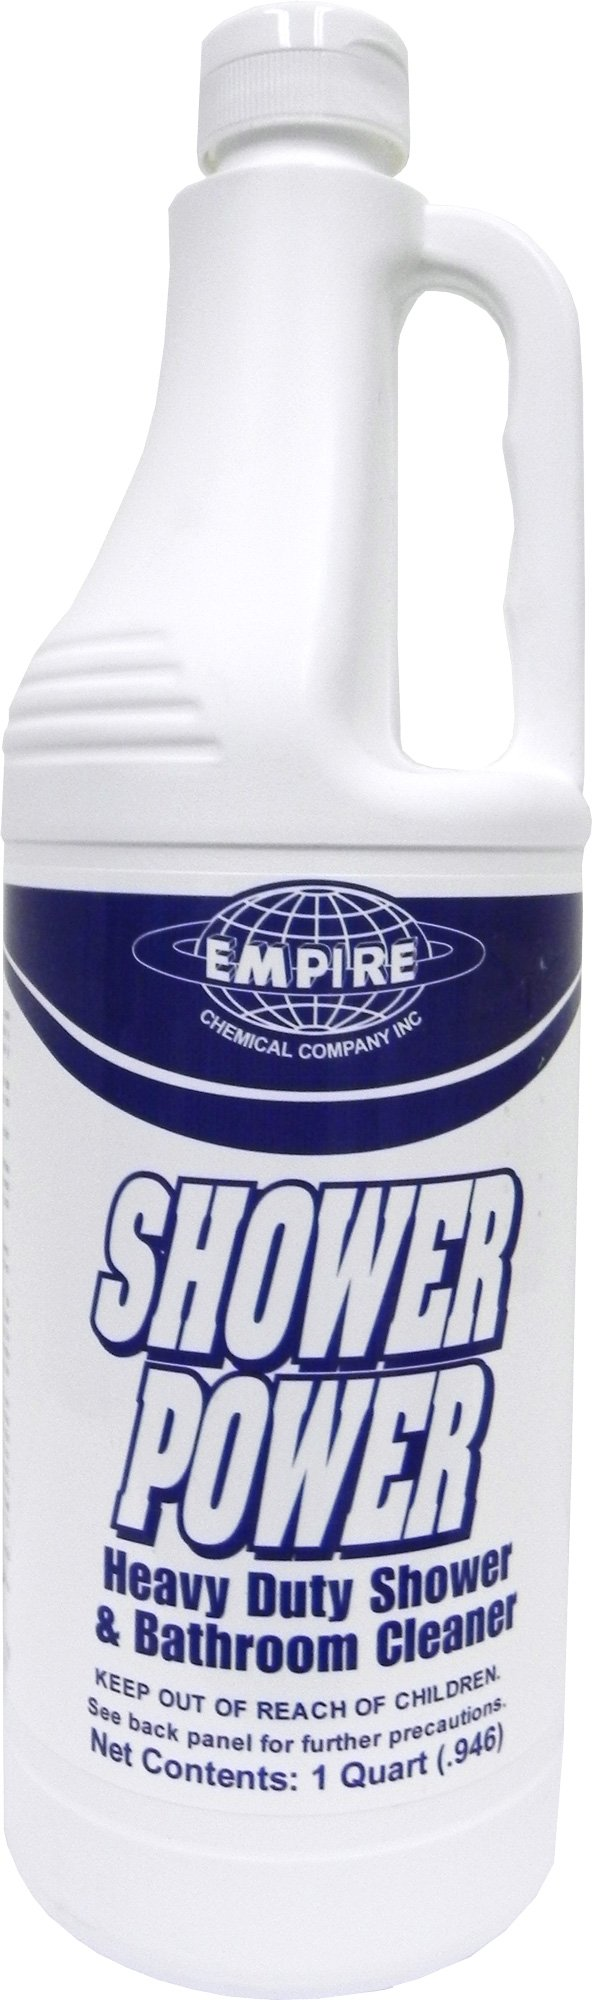 Shower Power - Powerful Bathroom Cleaner From Concentrate - Tub and Shower Cleaner - Cleans Tubs, Toilets, Urinals, Fixtures & More-1 Qt.